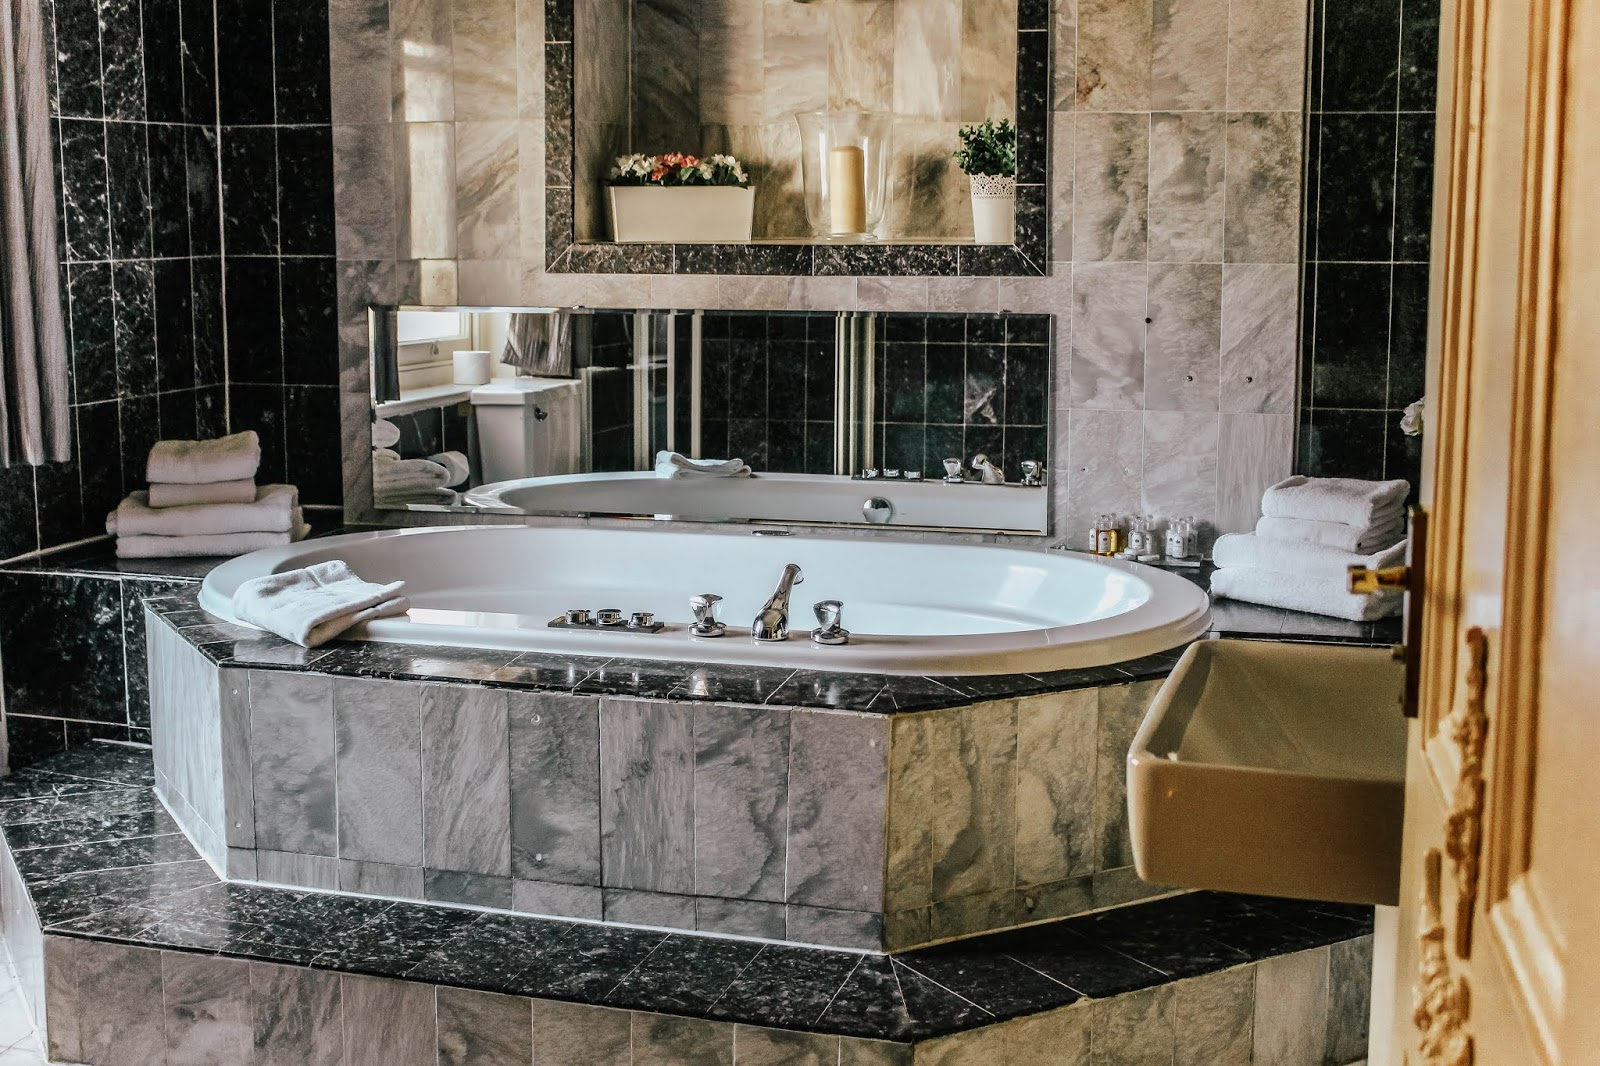 Luxury Hotel En Suite Bubble Bath London